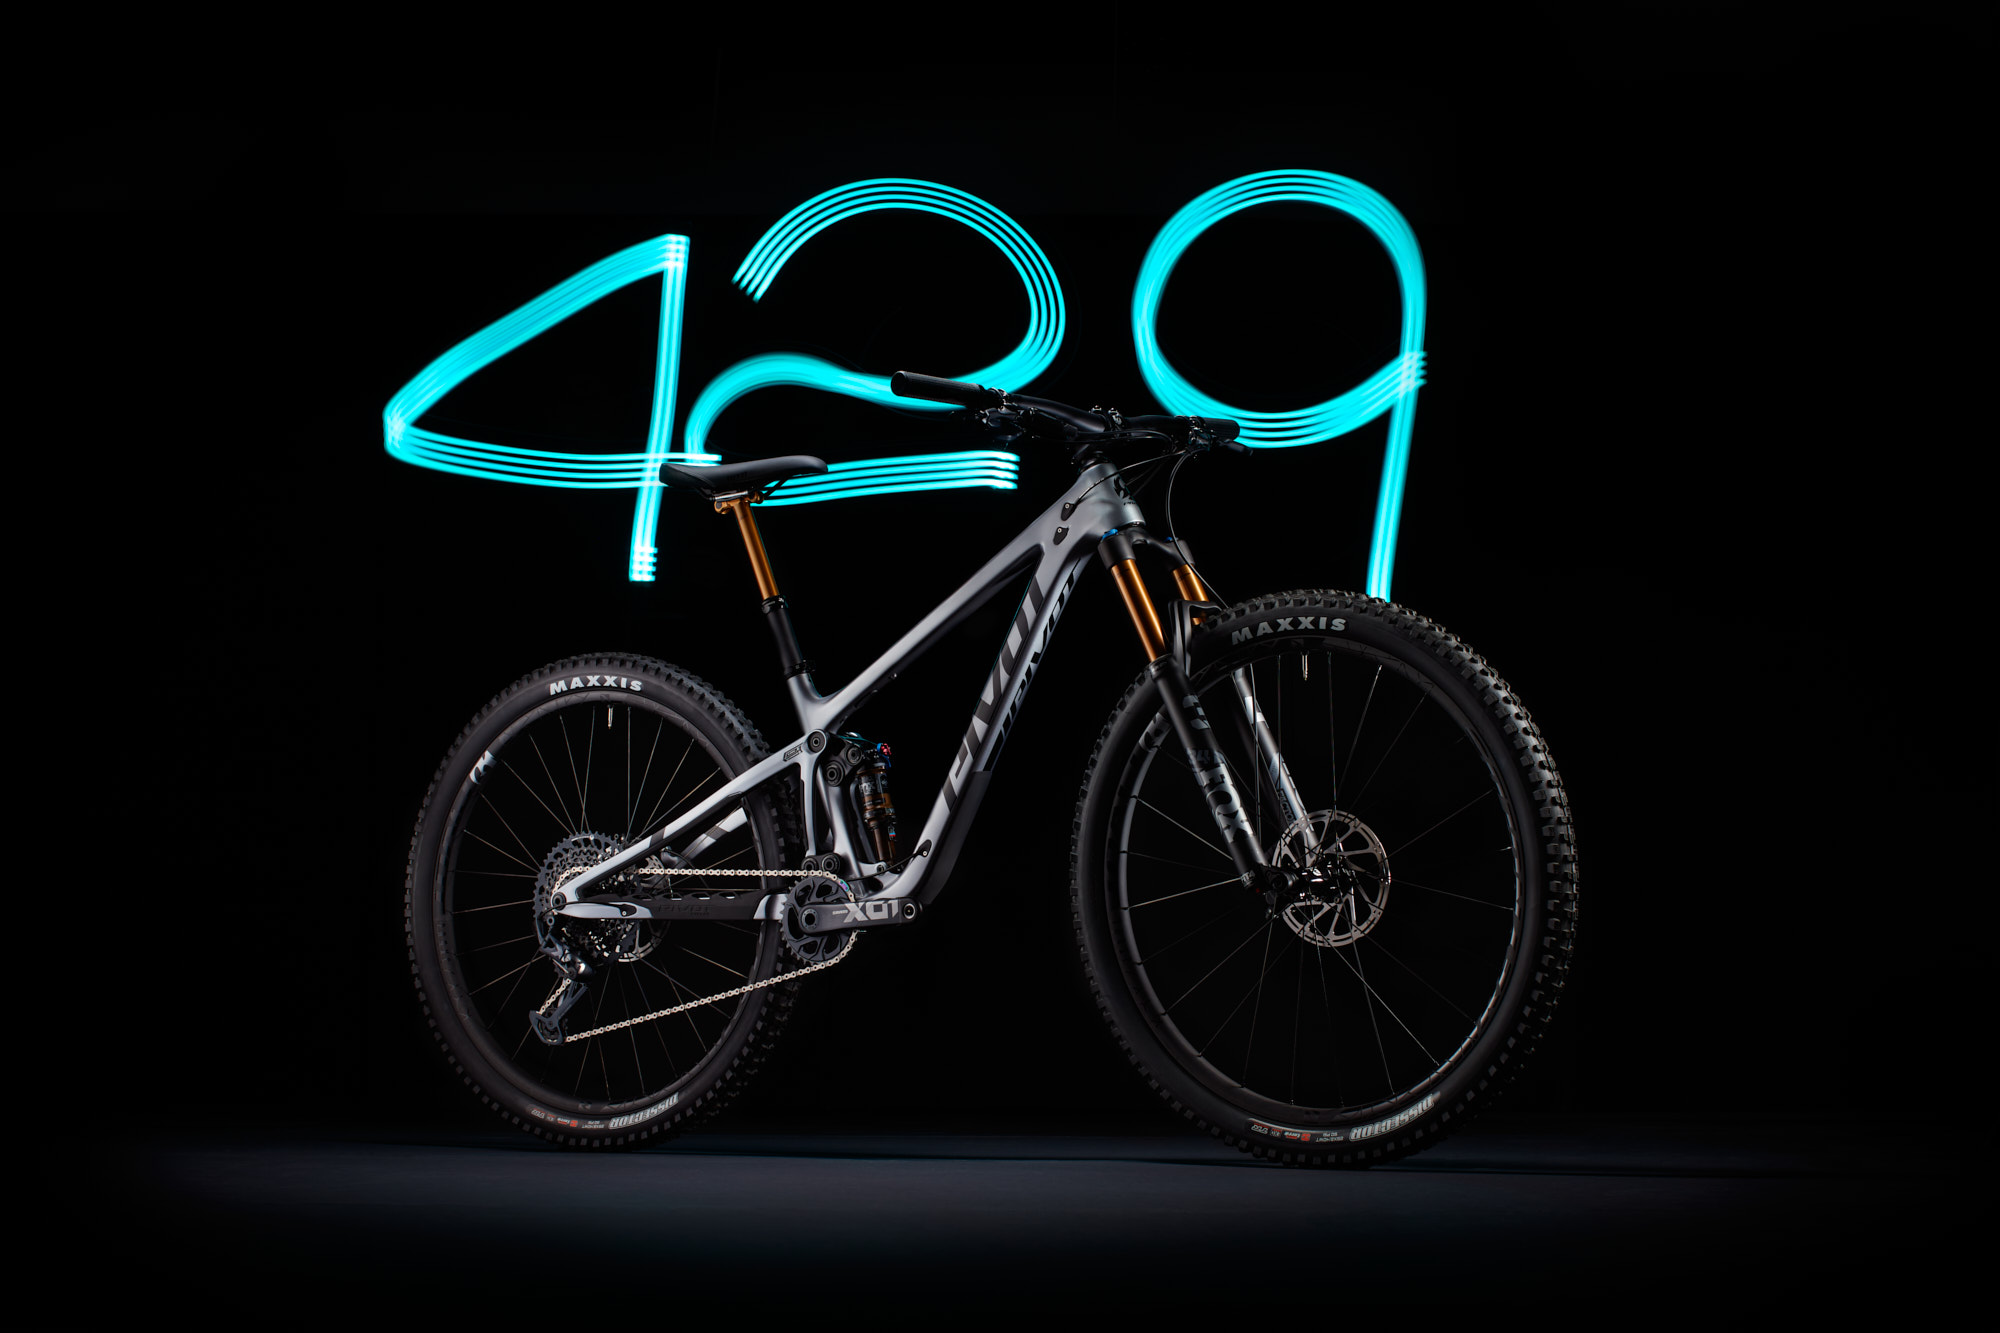 Pivot 429 Trail mountain bike in light painting long exposure in high end studio product photo.